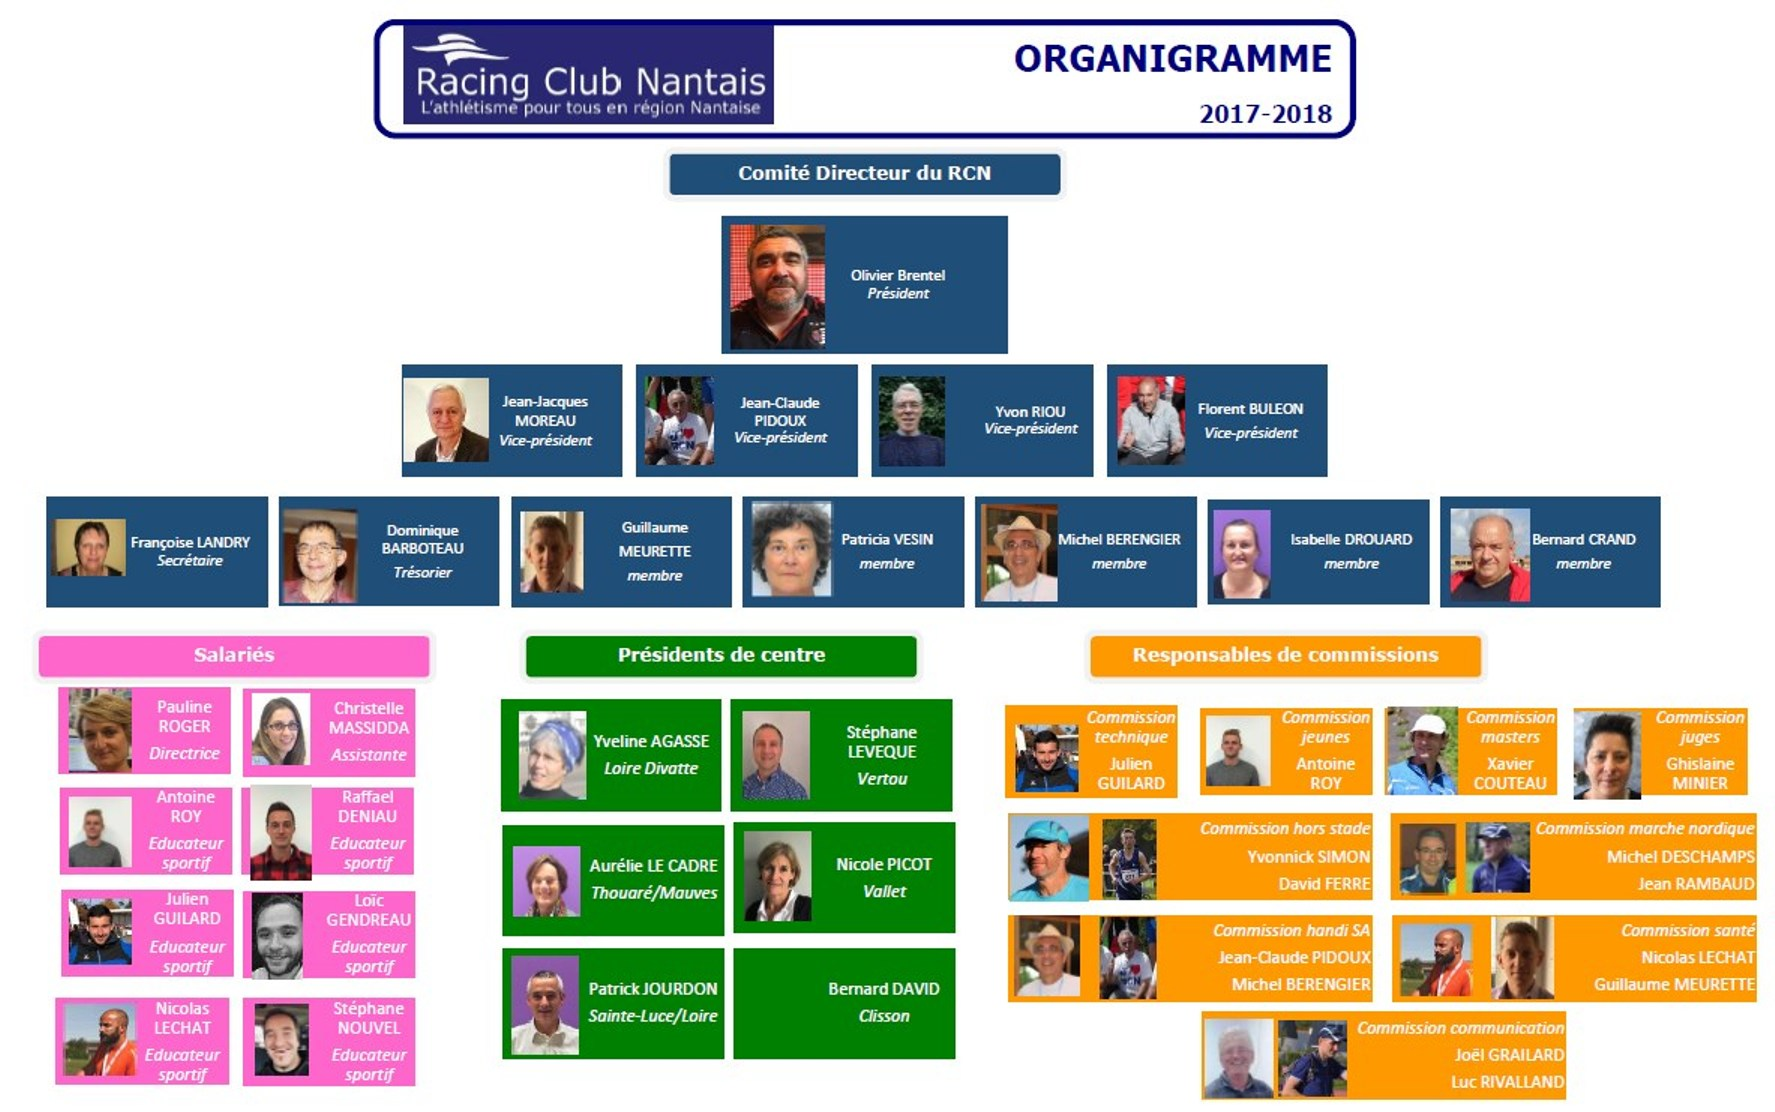 Organigramme Photos RCN 2017 2018